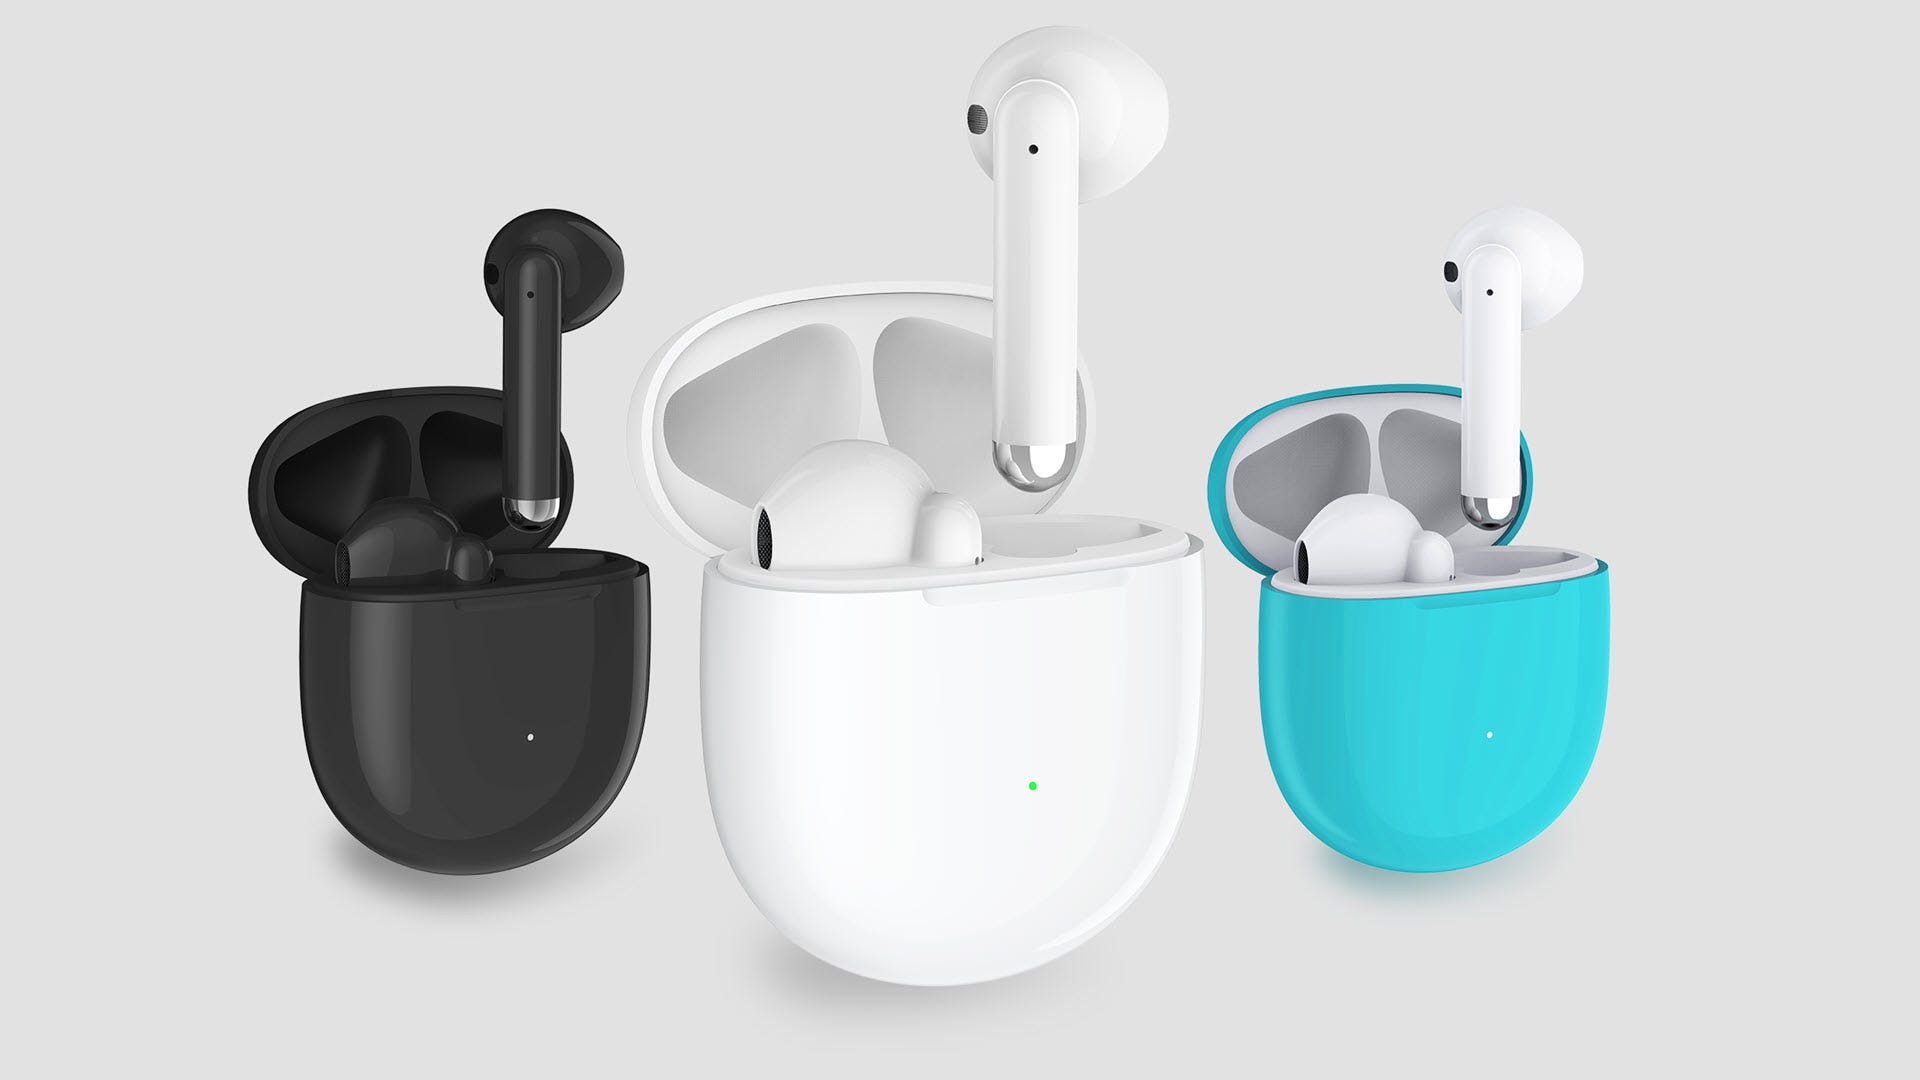 Three sets of true wireless earbuds in black, white, and teal.